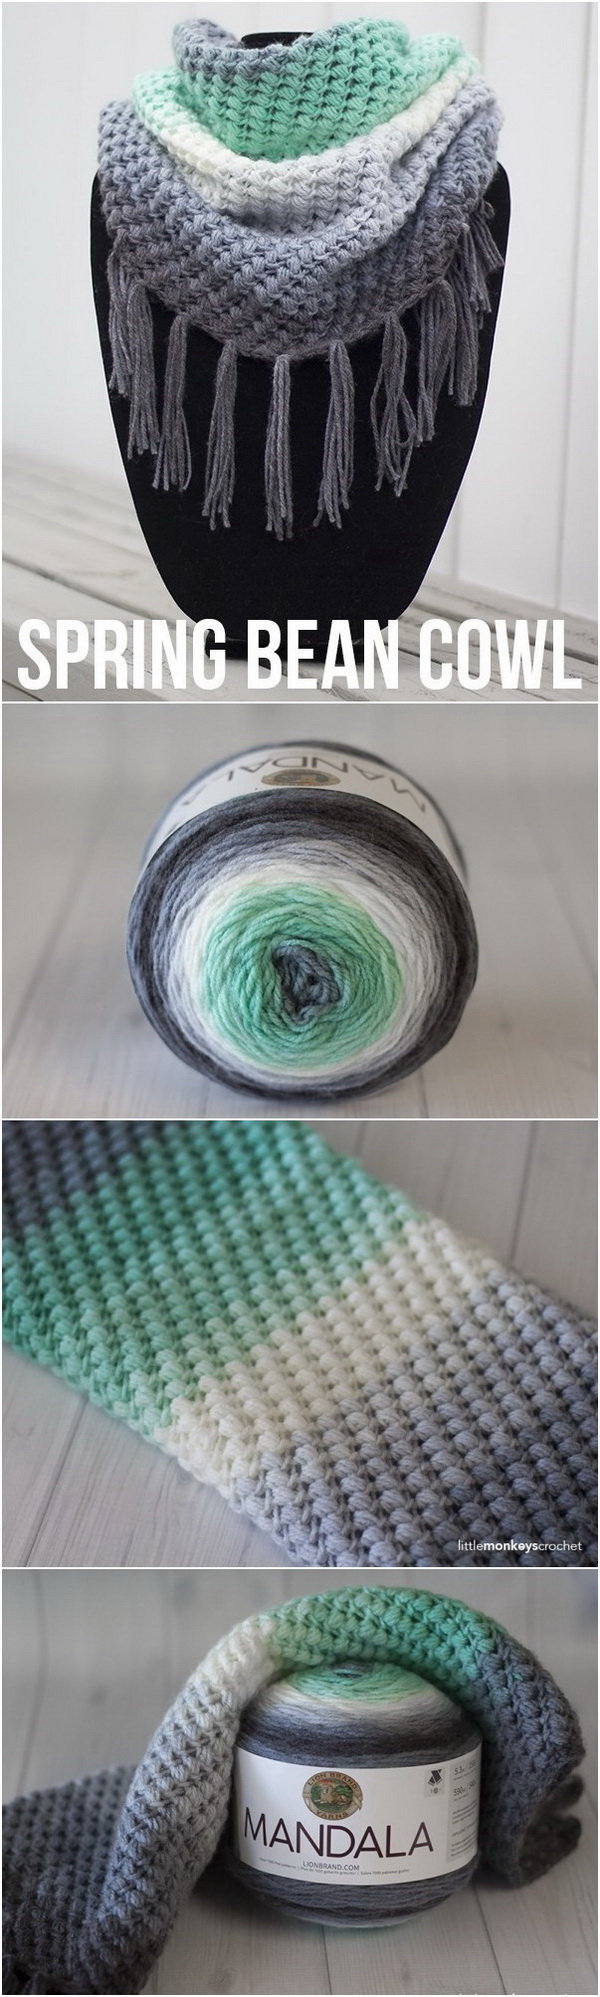 Crochet Spring Bean Cowl. Love the gorgeous gradient look of this crochet spring bean cowl! These crochet bean cowl for women are perfect for spring or cool days!